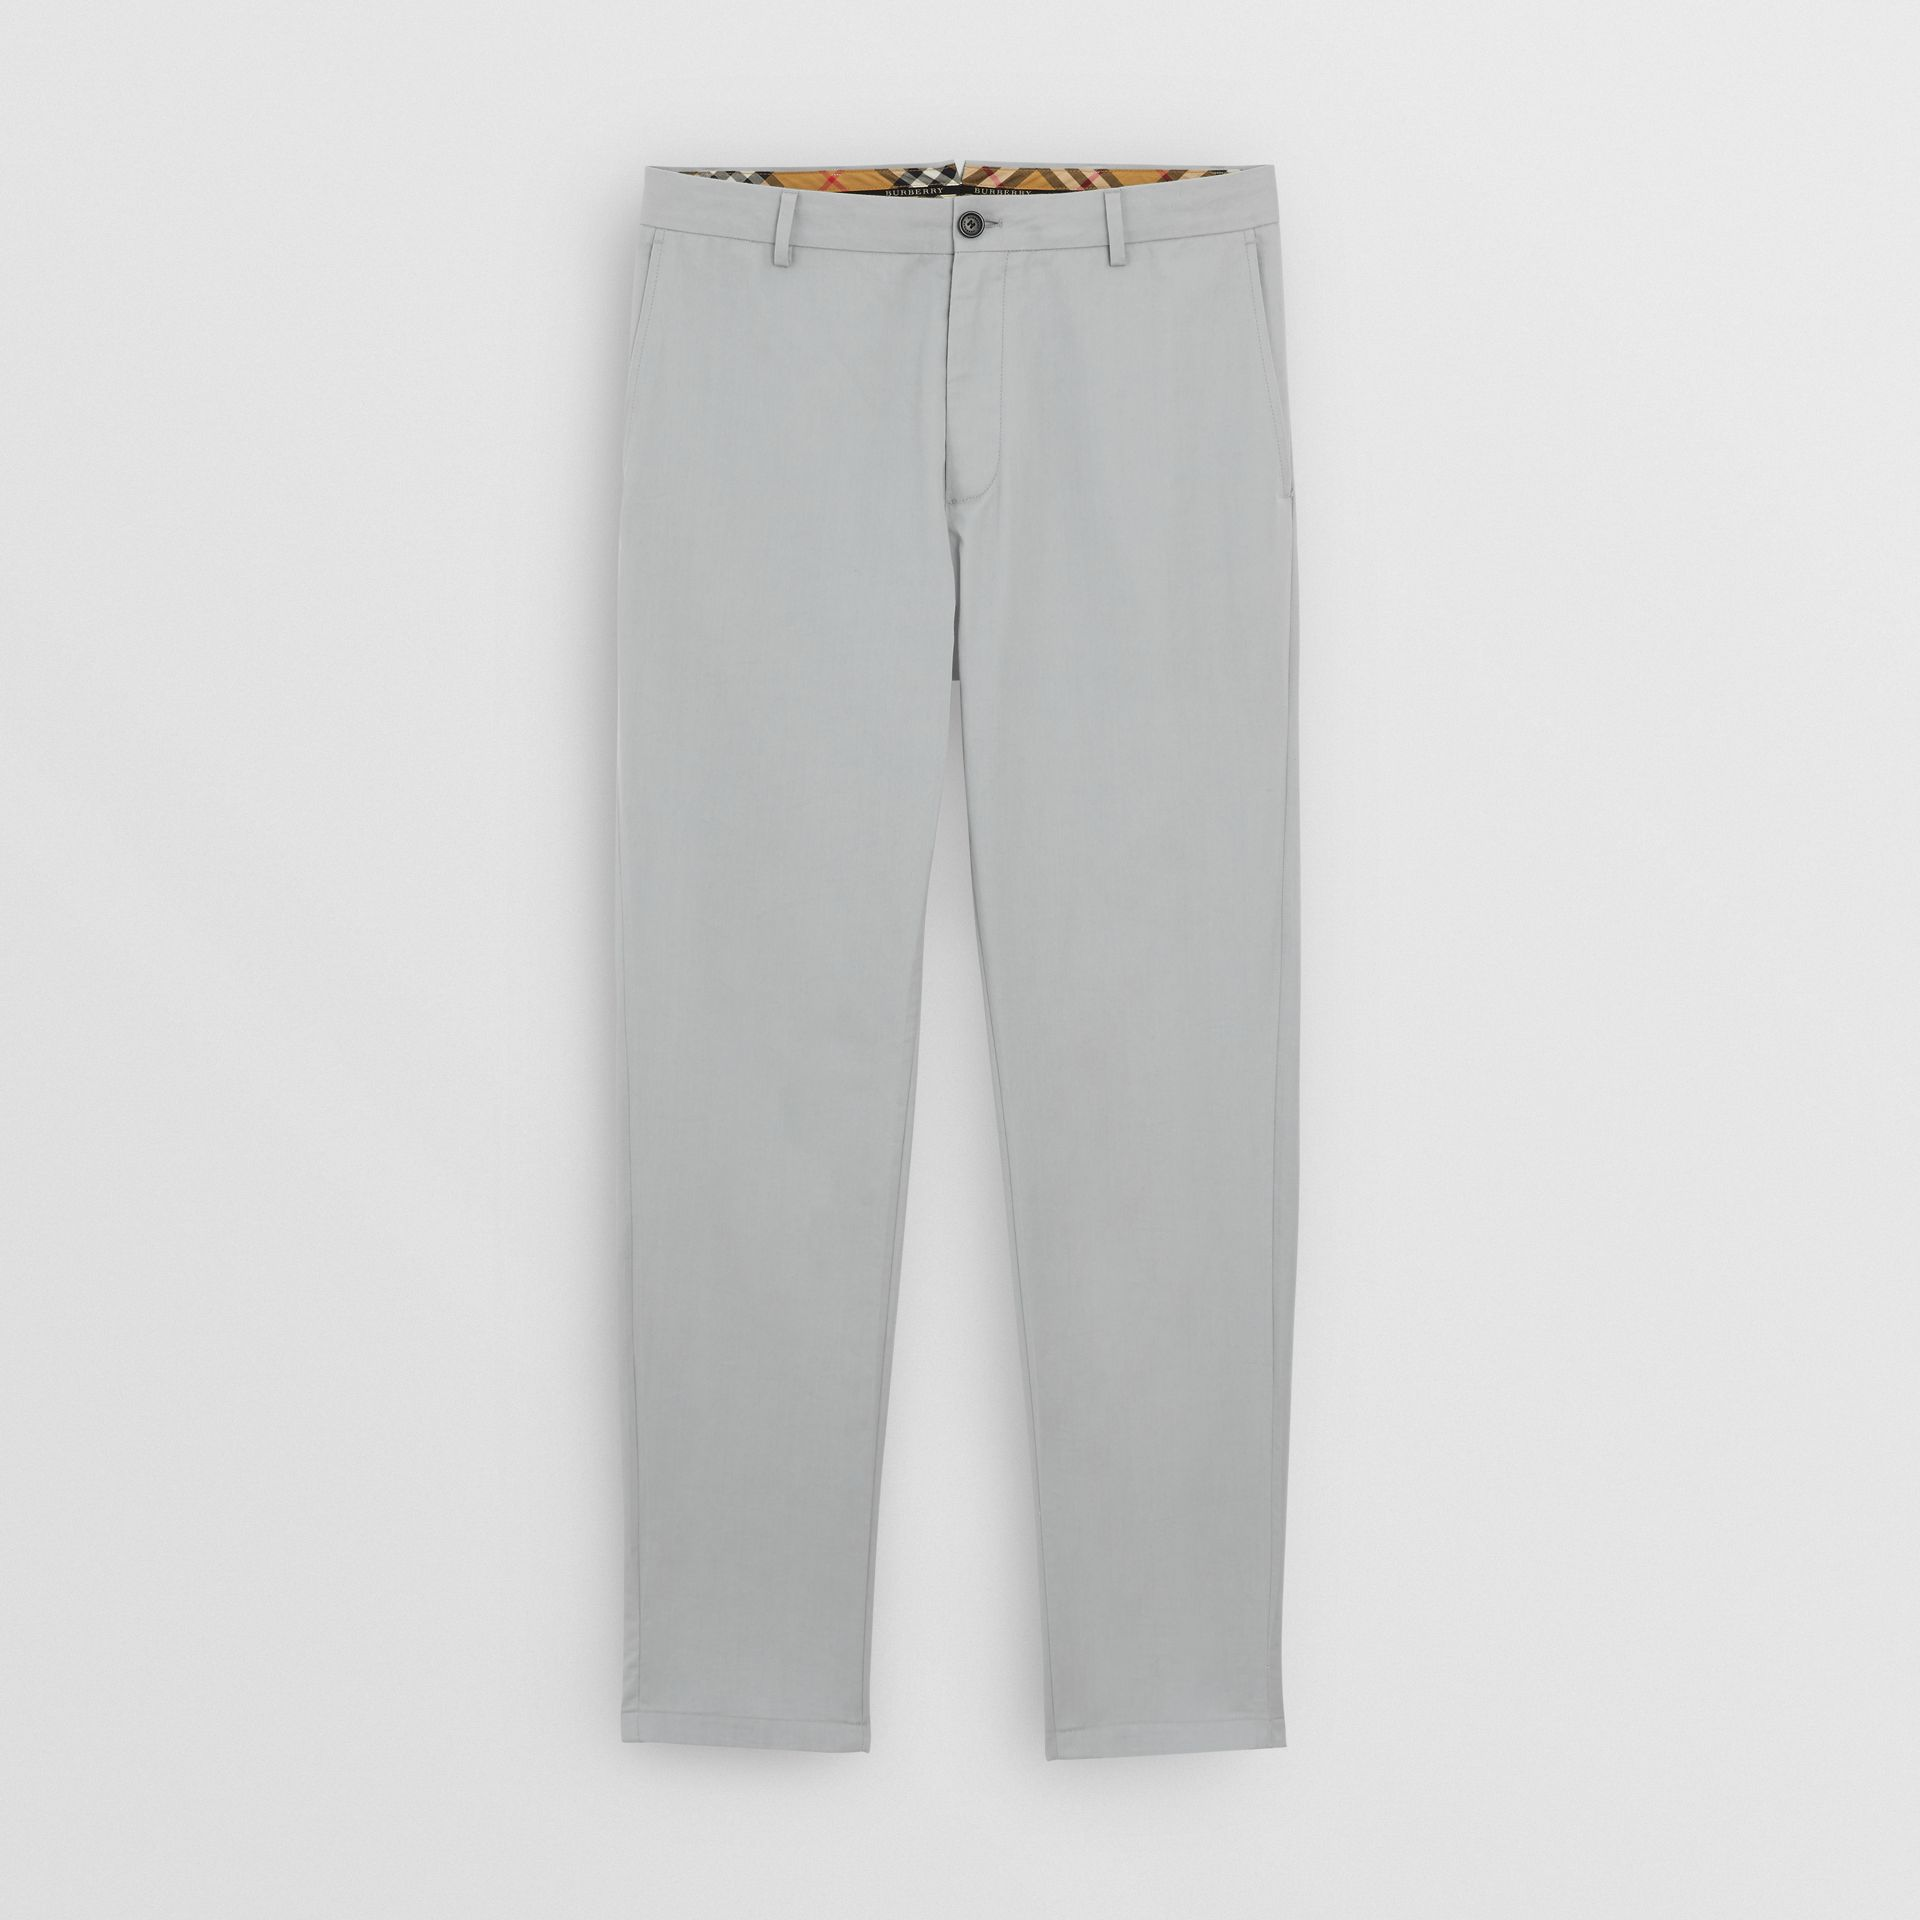 Slim Fit Cotton Chinos in Blue Grey - Men | Burberry United States - gallery image 3